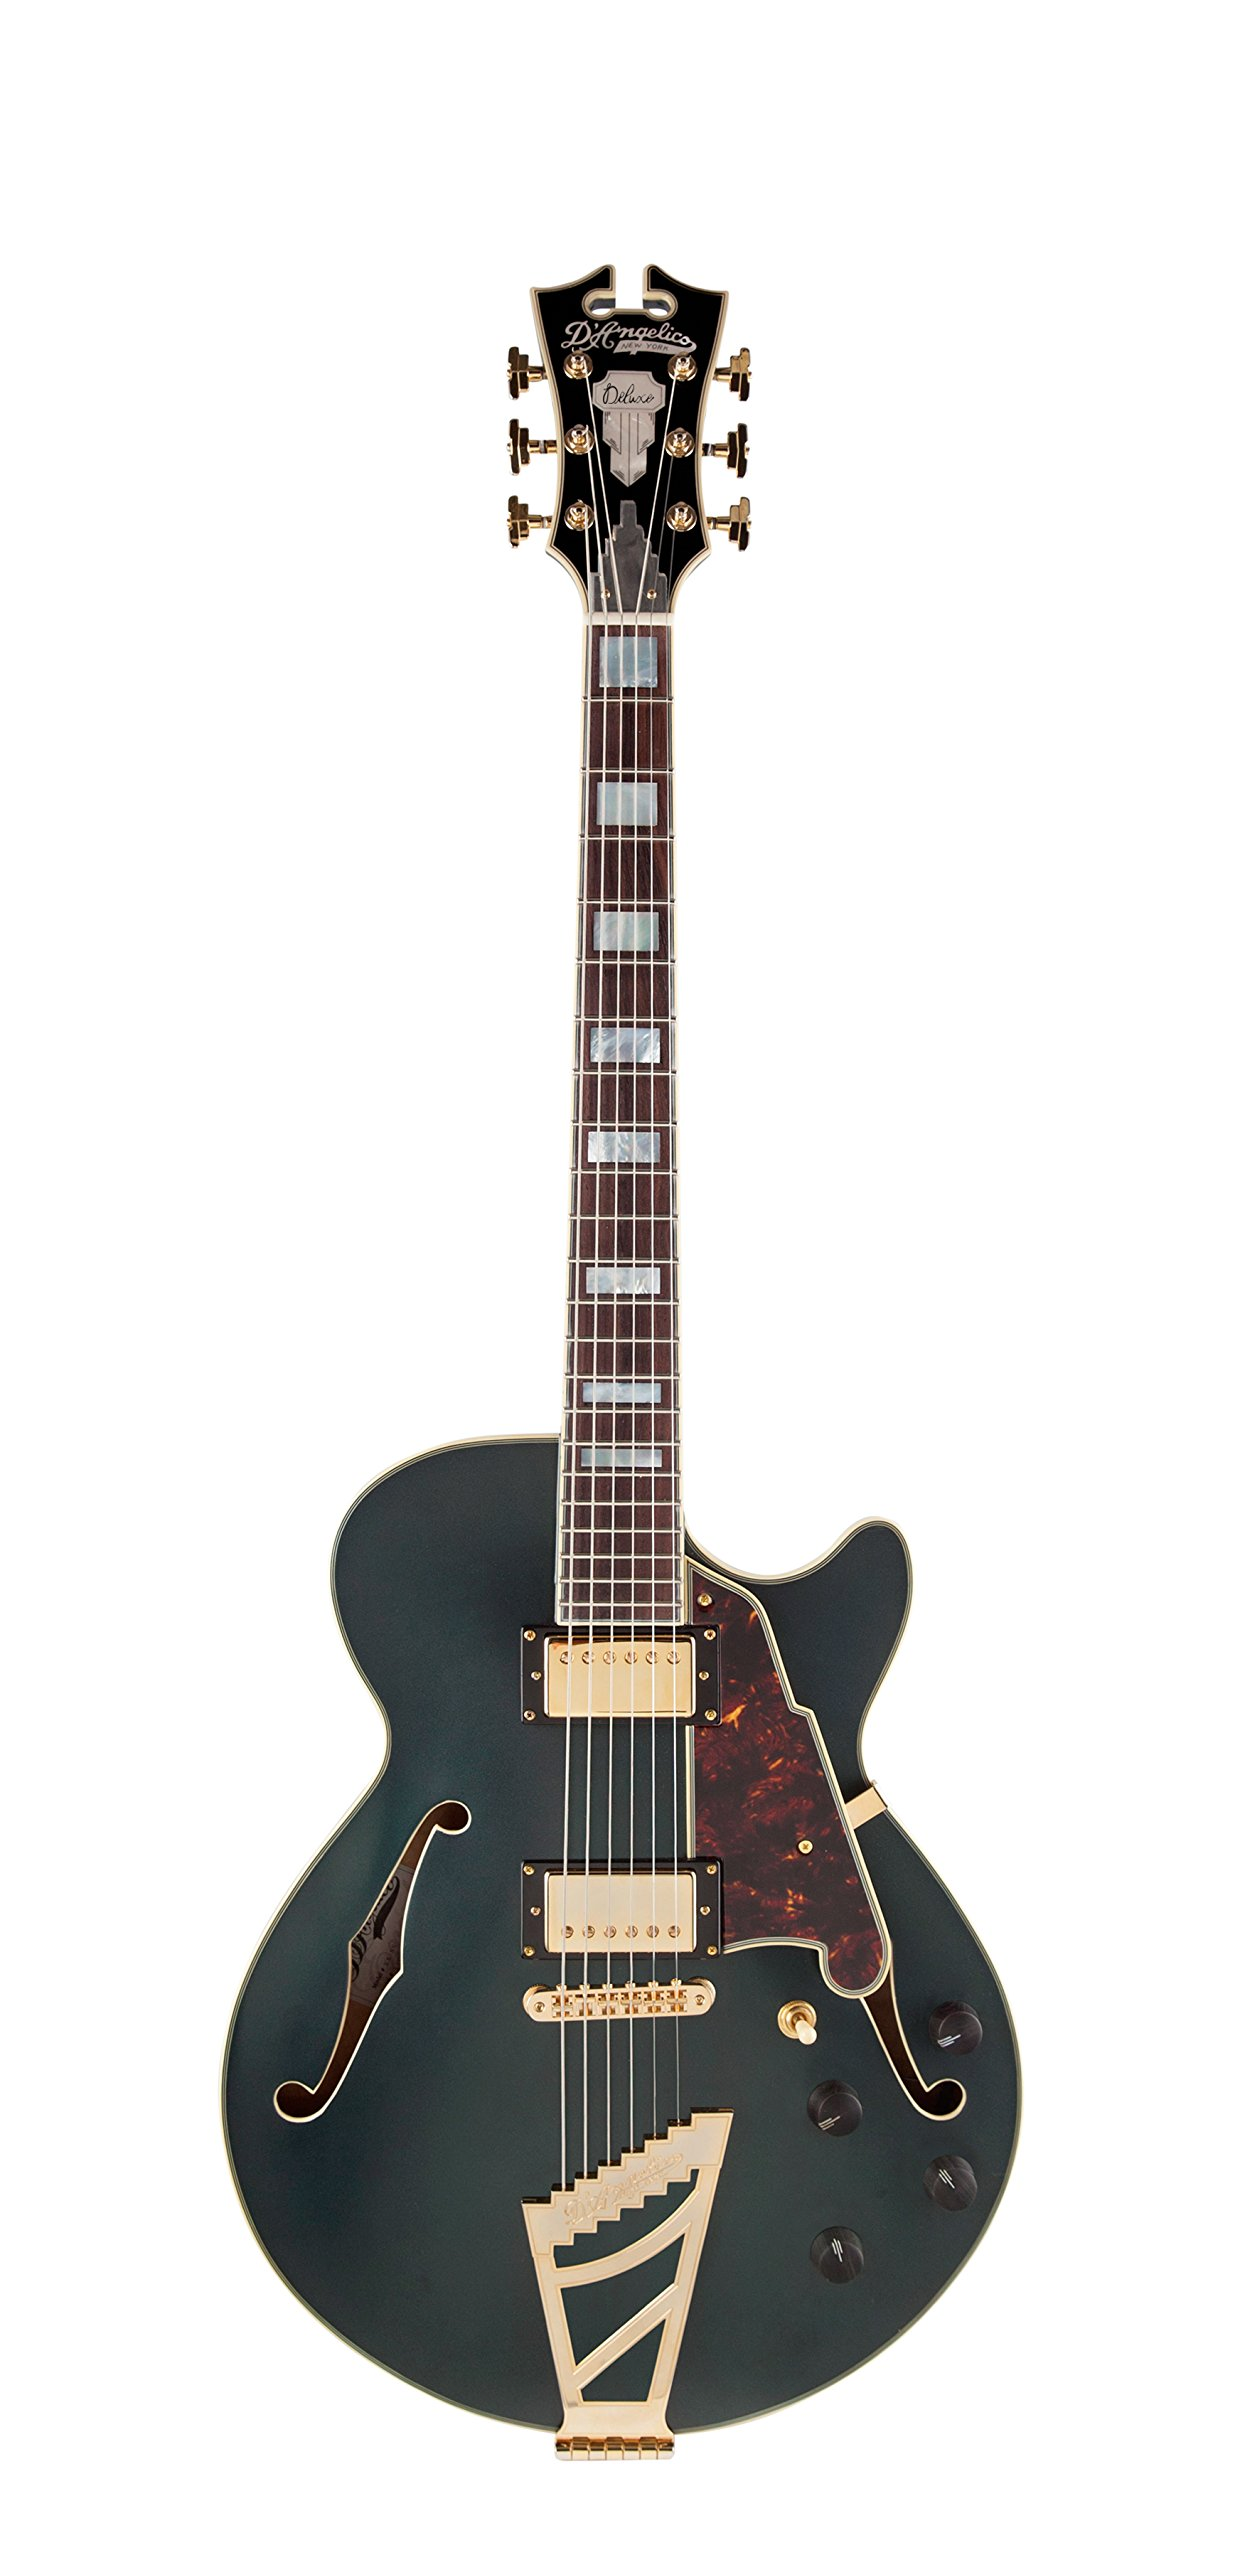 Cheap D Angelico Deluxe SS Semi-Hollow Electric Guitar w/ Stairstep Tailpiece - Matte Midnight Black Friday & Cyber Monday 2019